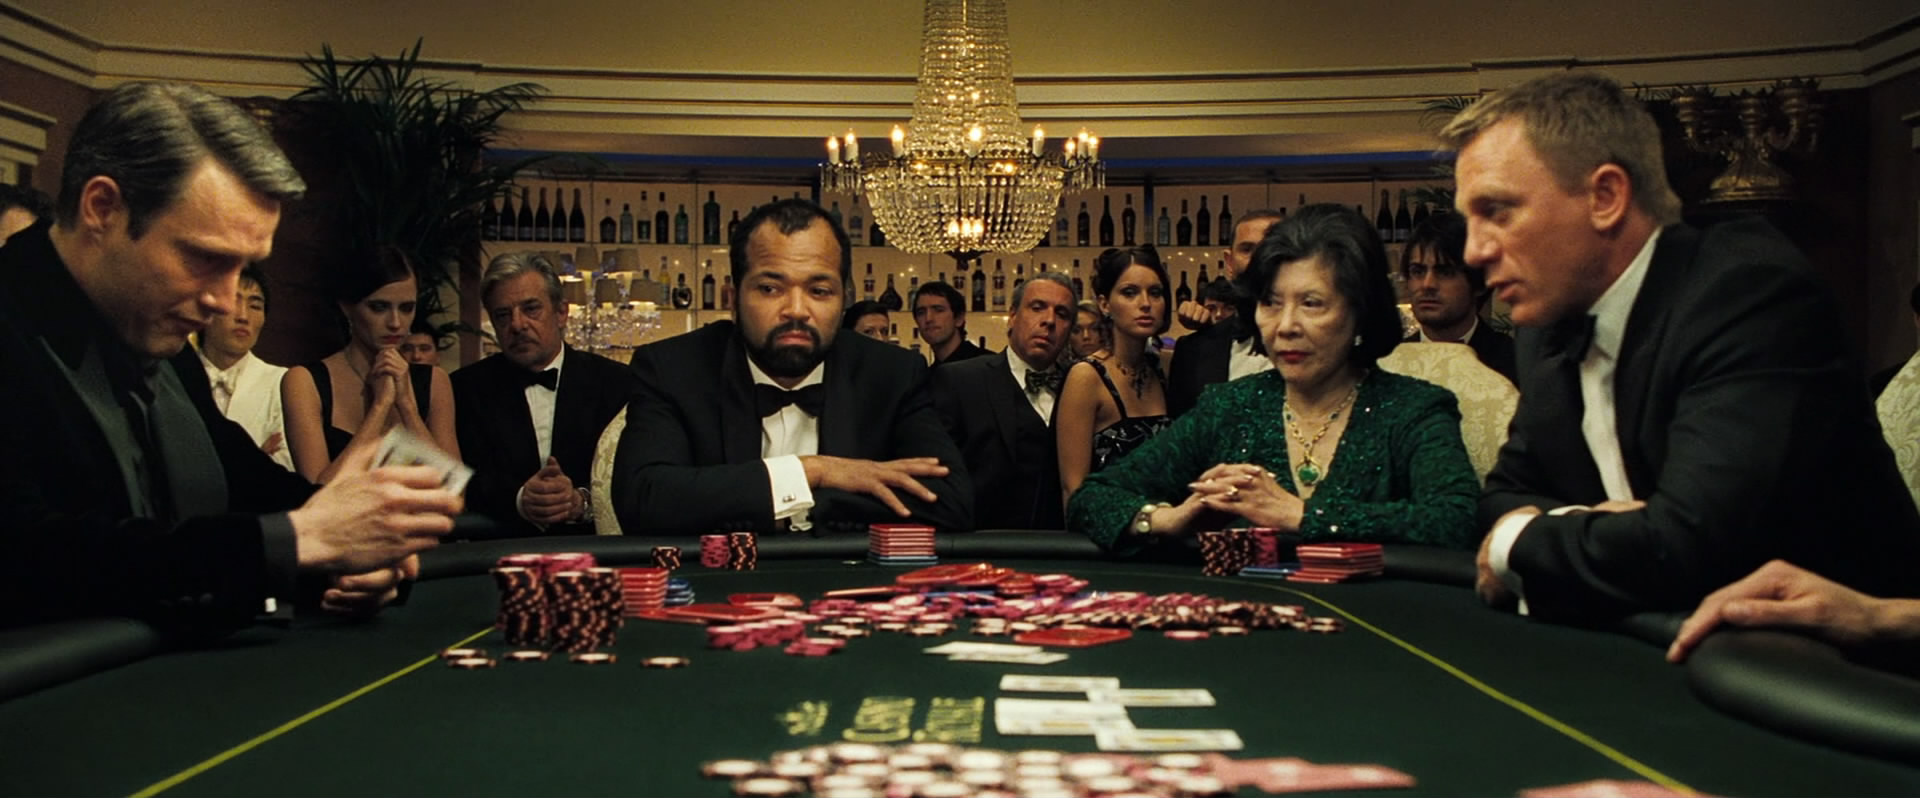 Casino royale film review casino roulette flash game